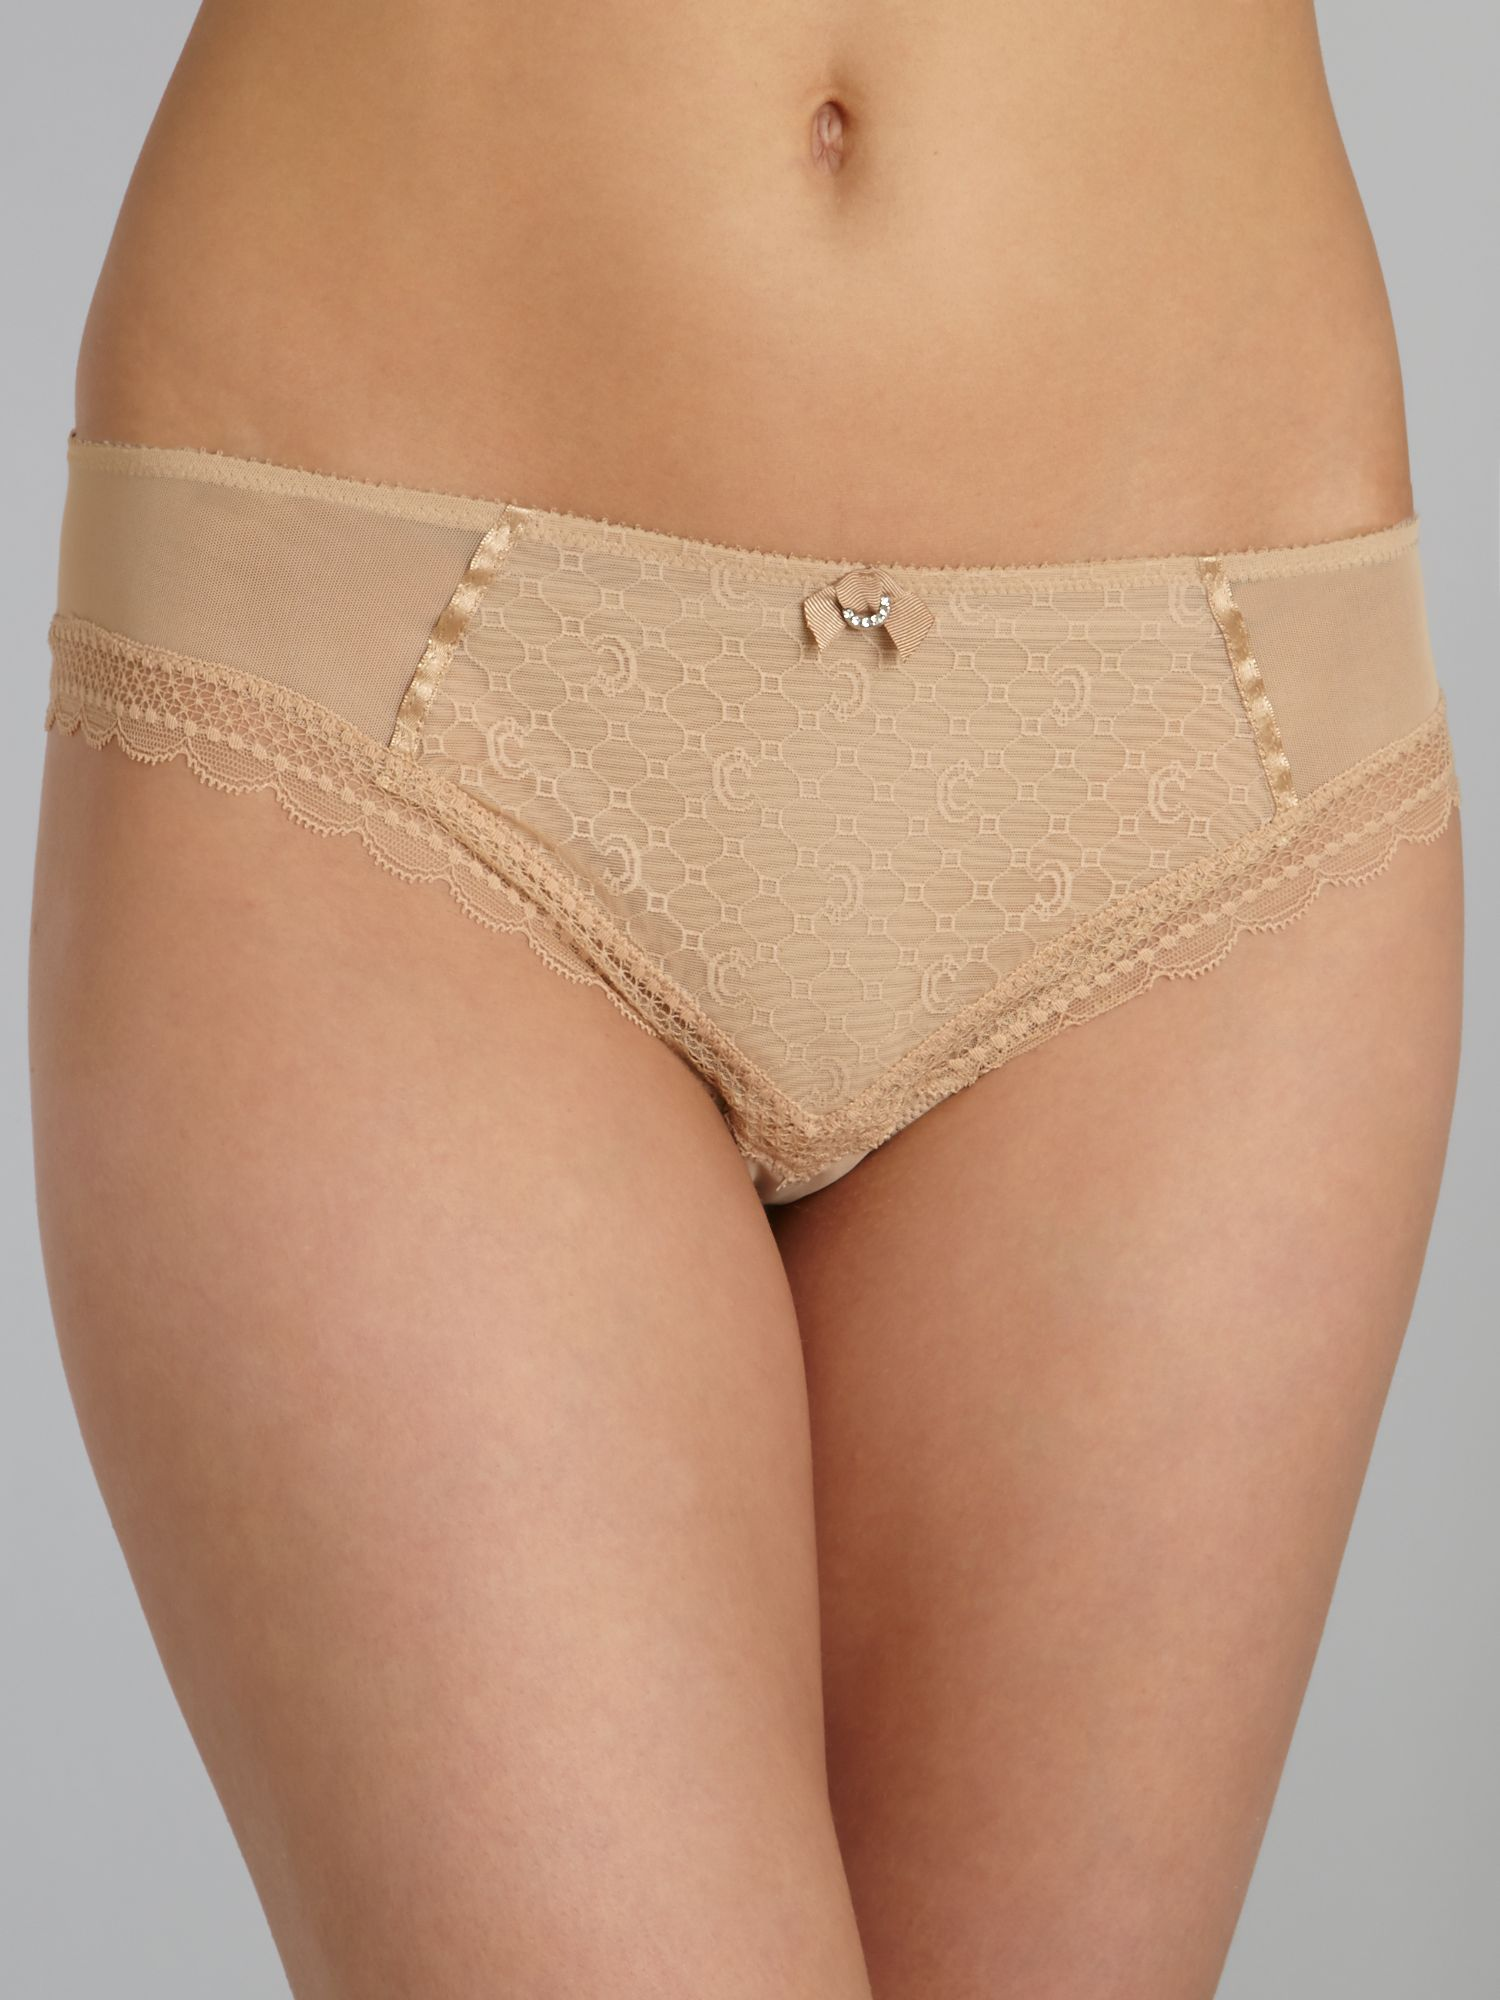 C chic sexy brazillian brief